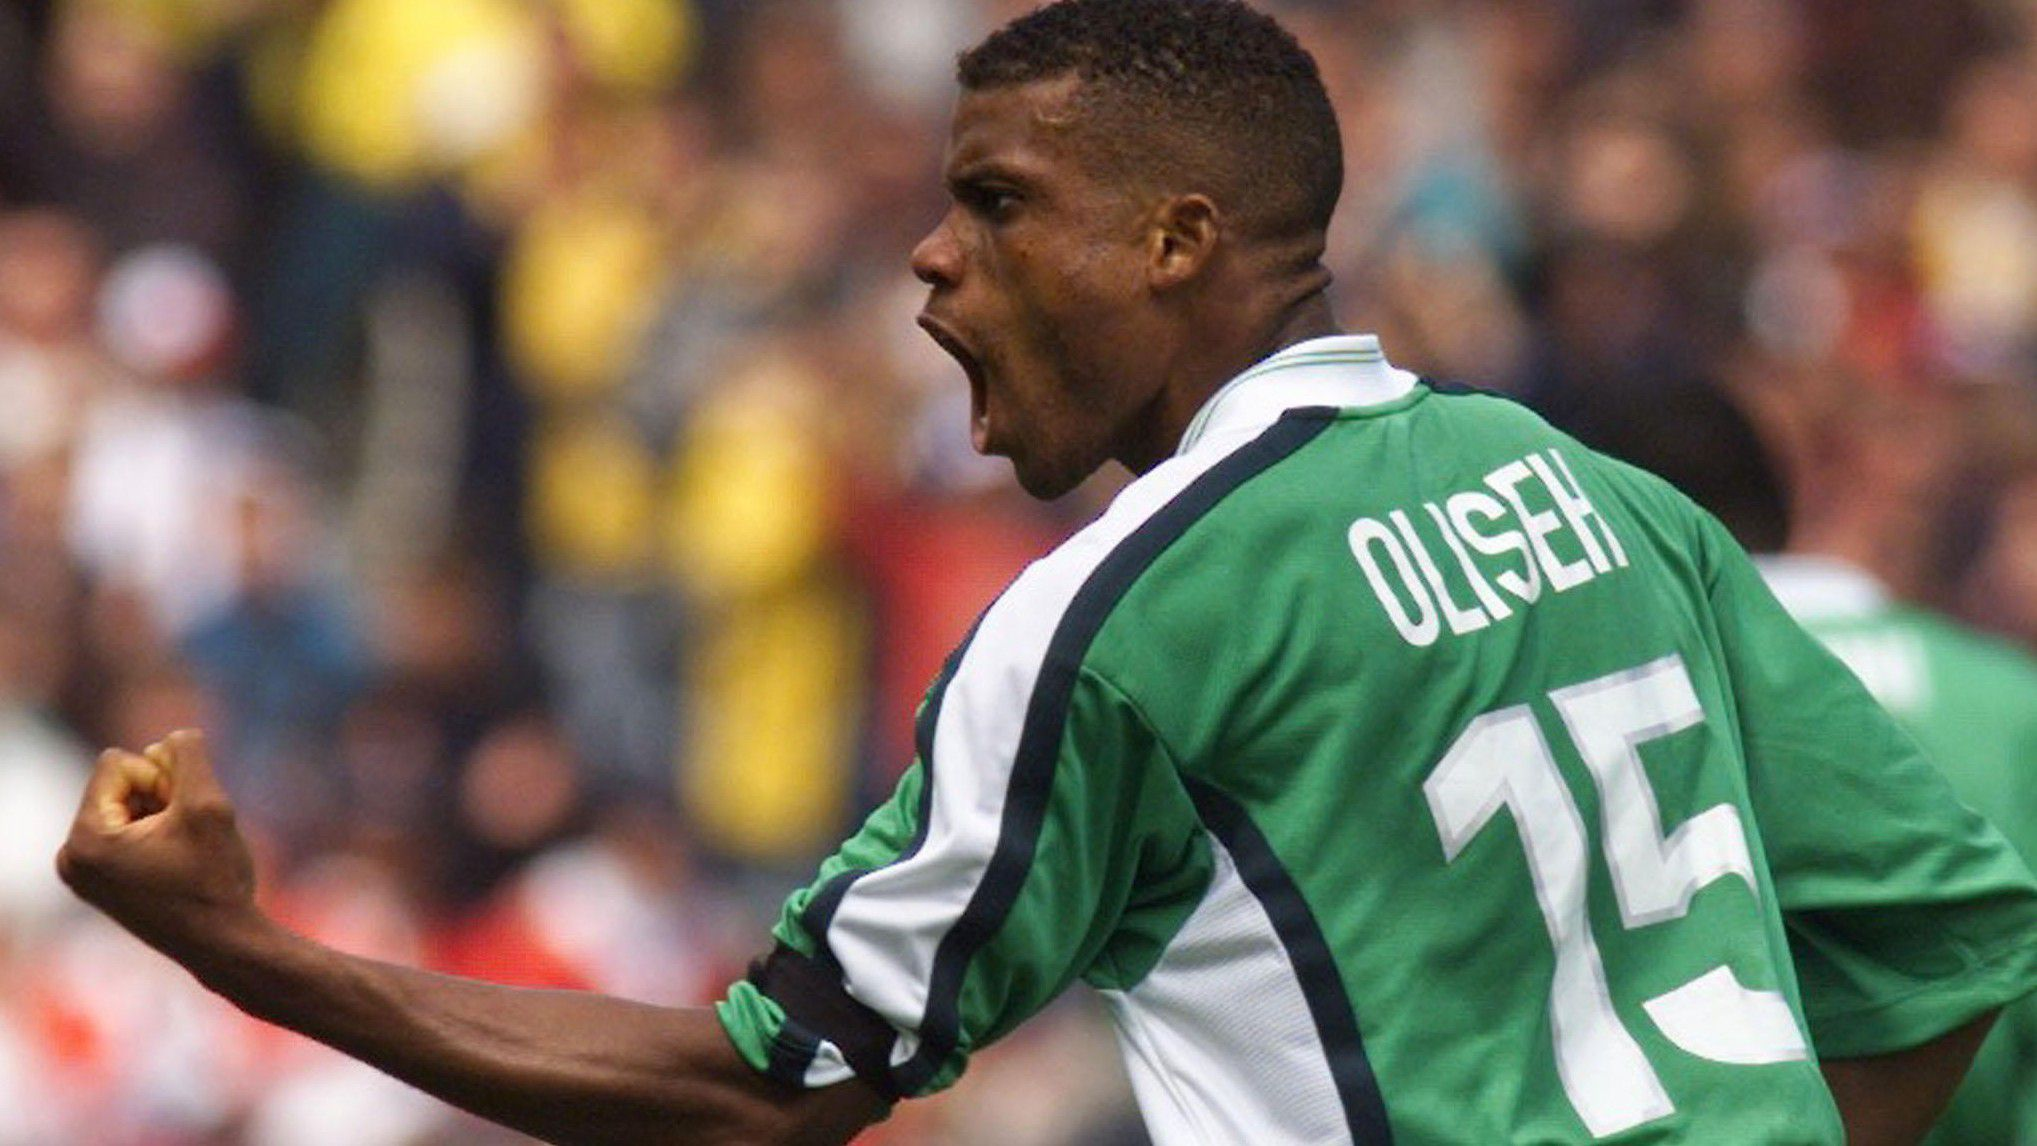 Former NSC Physio Head lauds Oliseh's patriotism after playing under distress